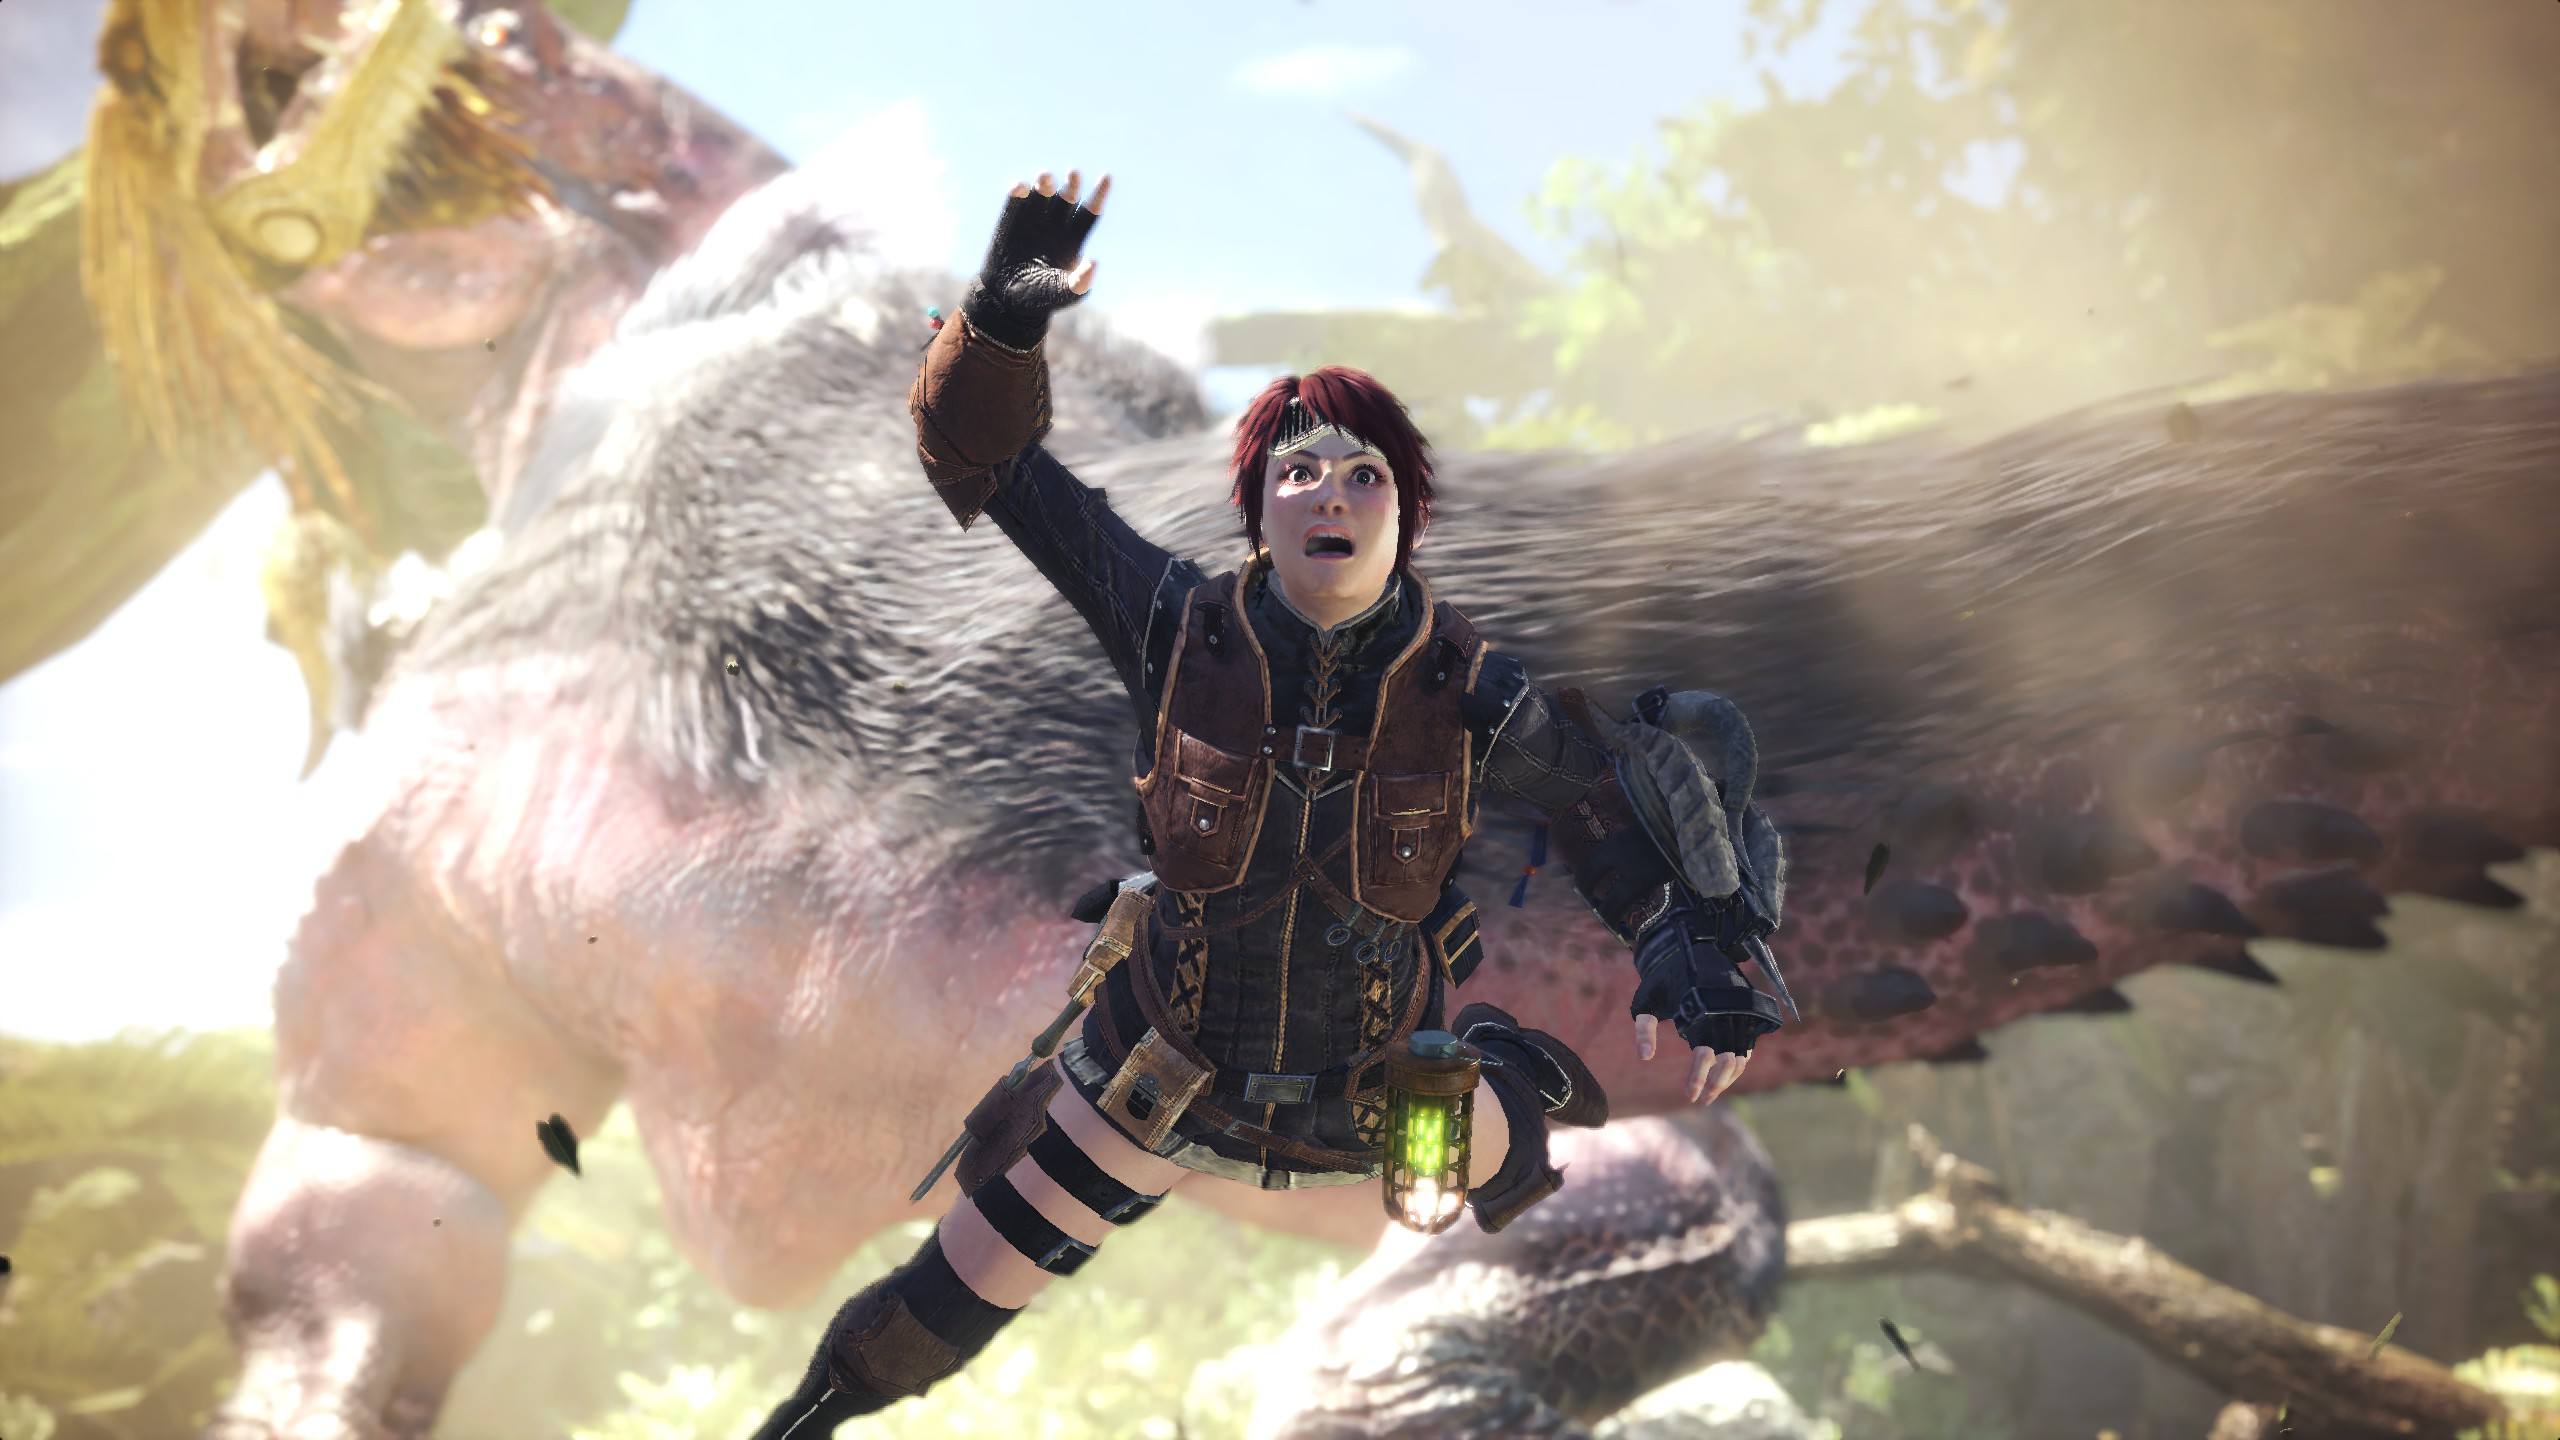 Monster hunter world graphics performance carving up